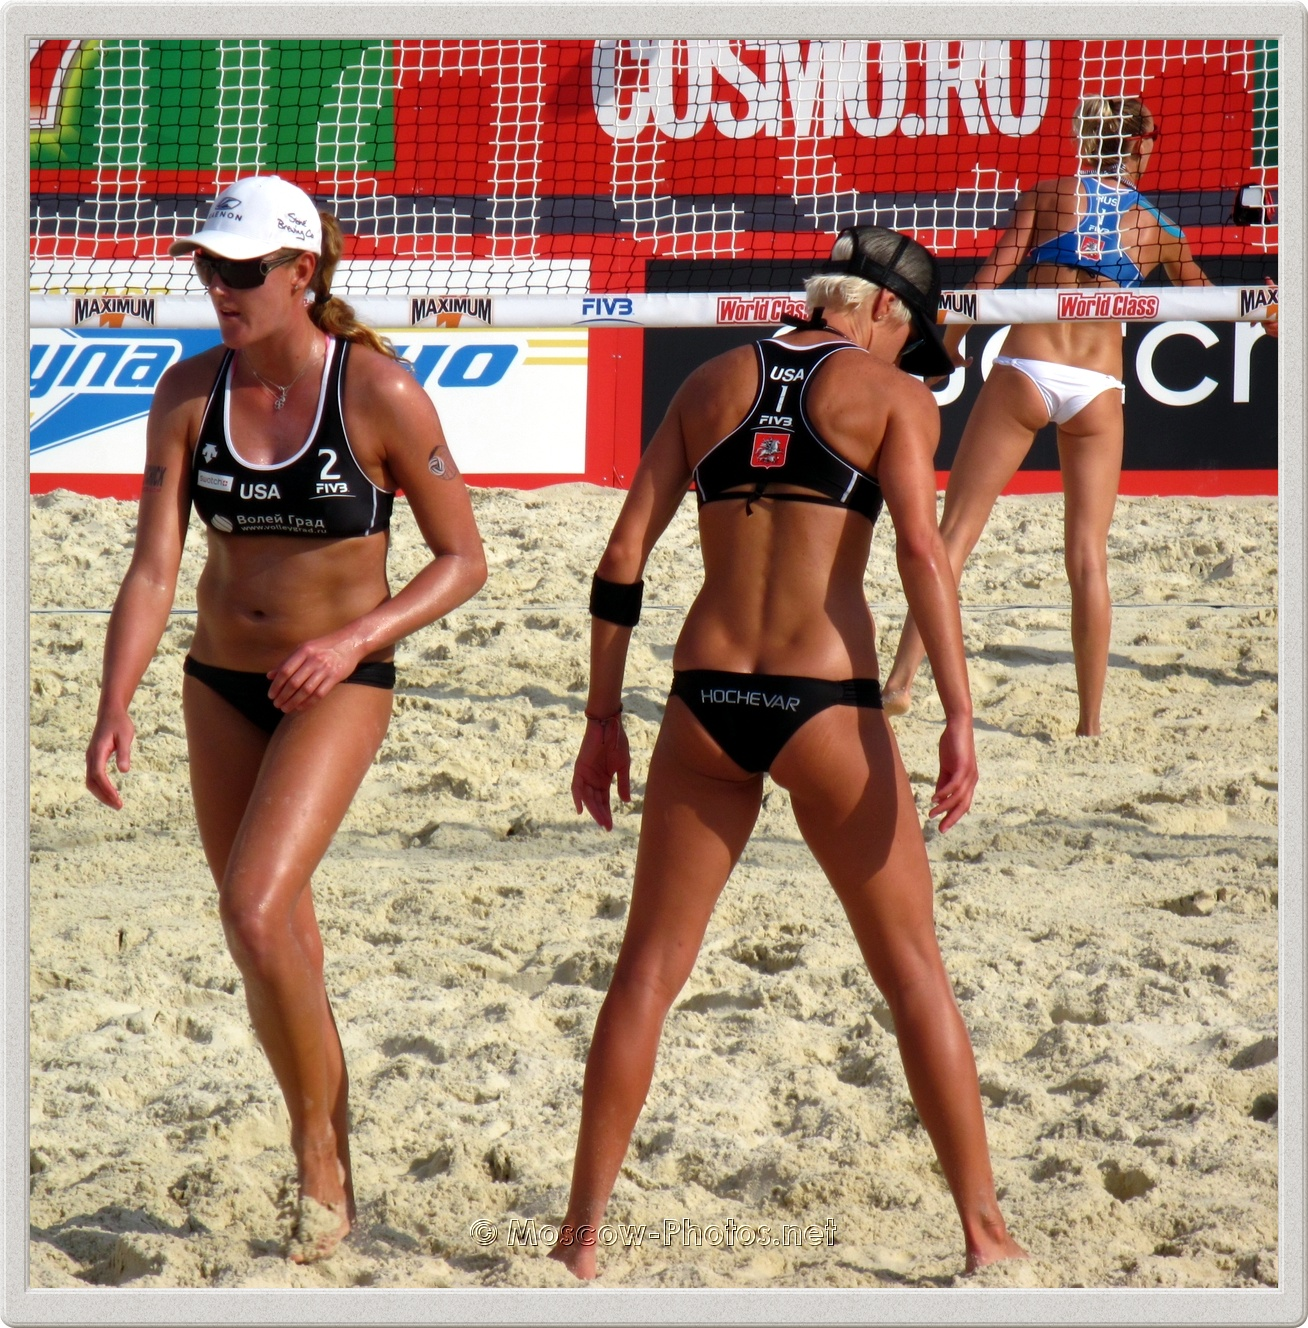 USA beach volley team after loss of a point